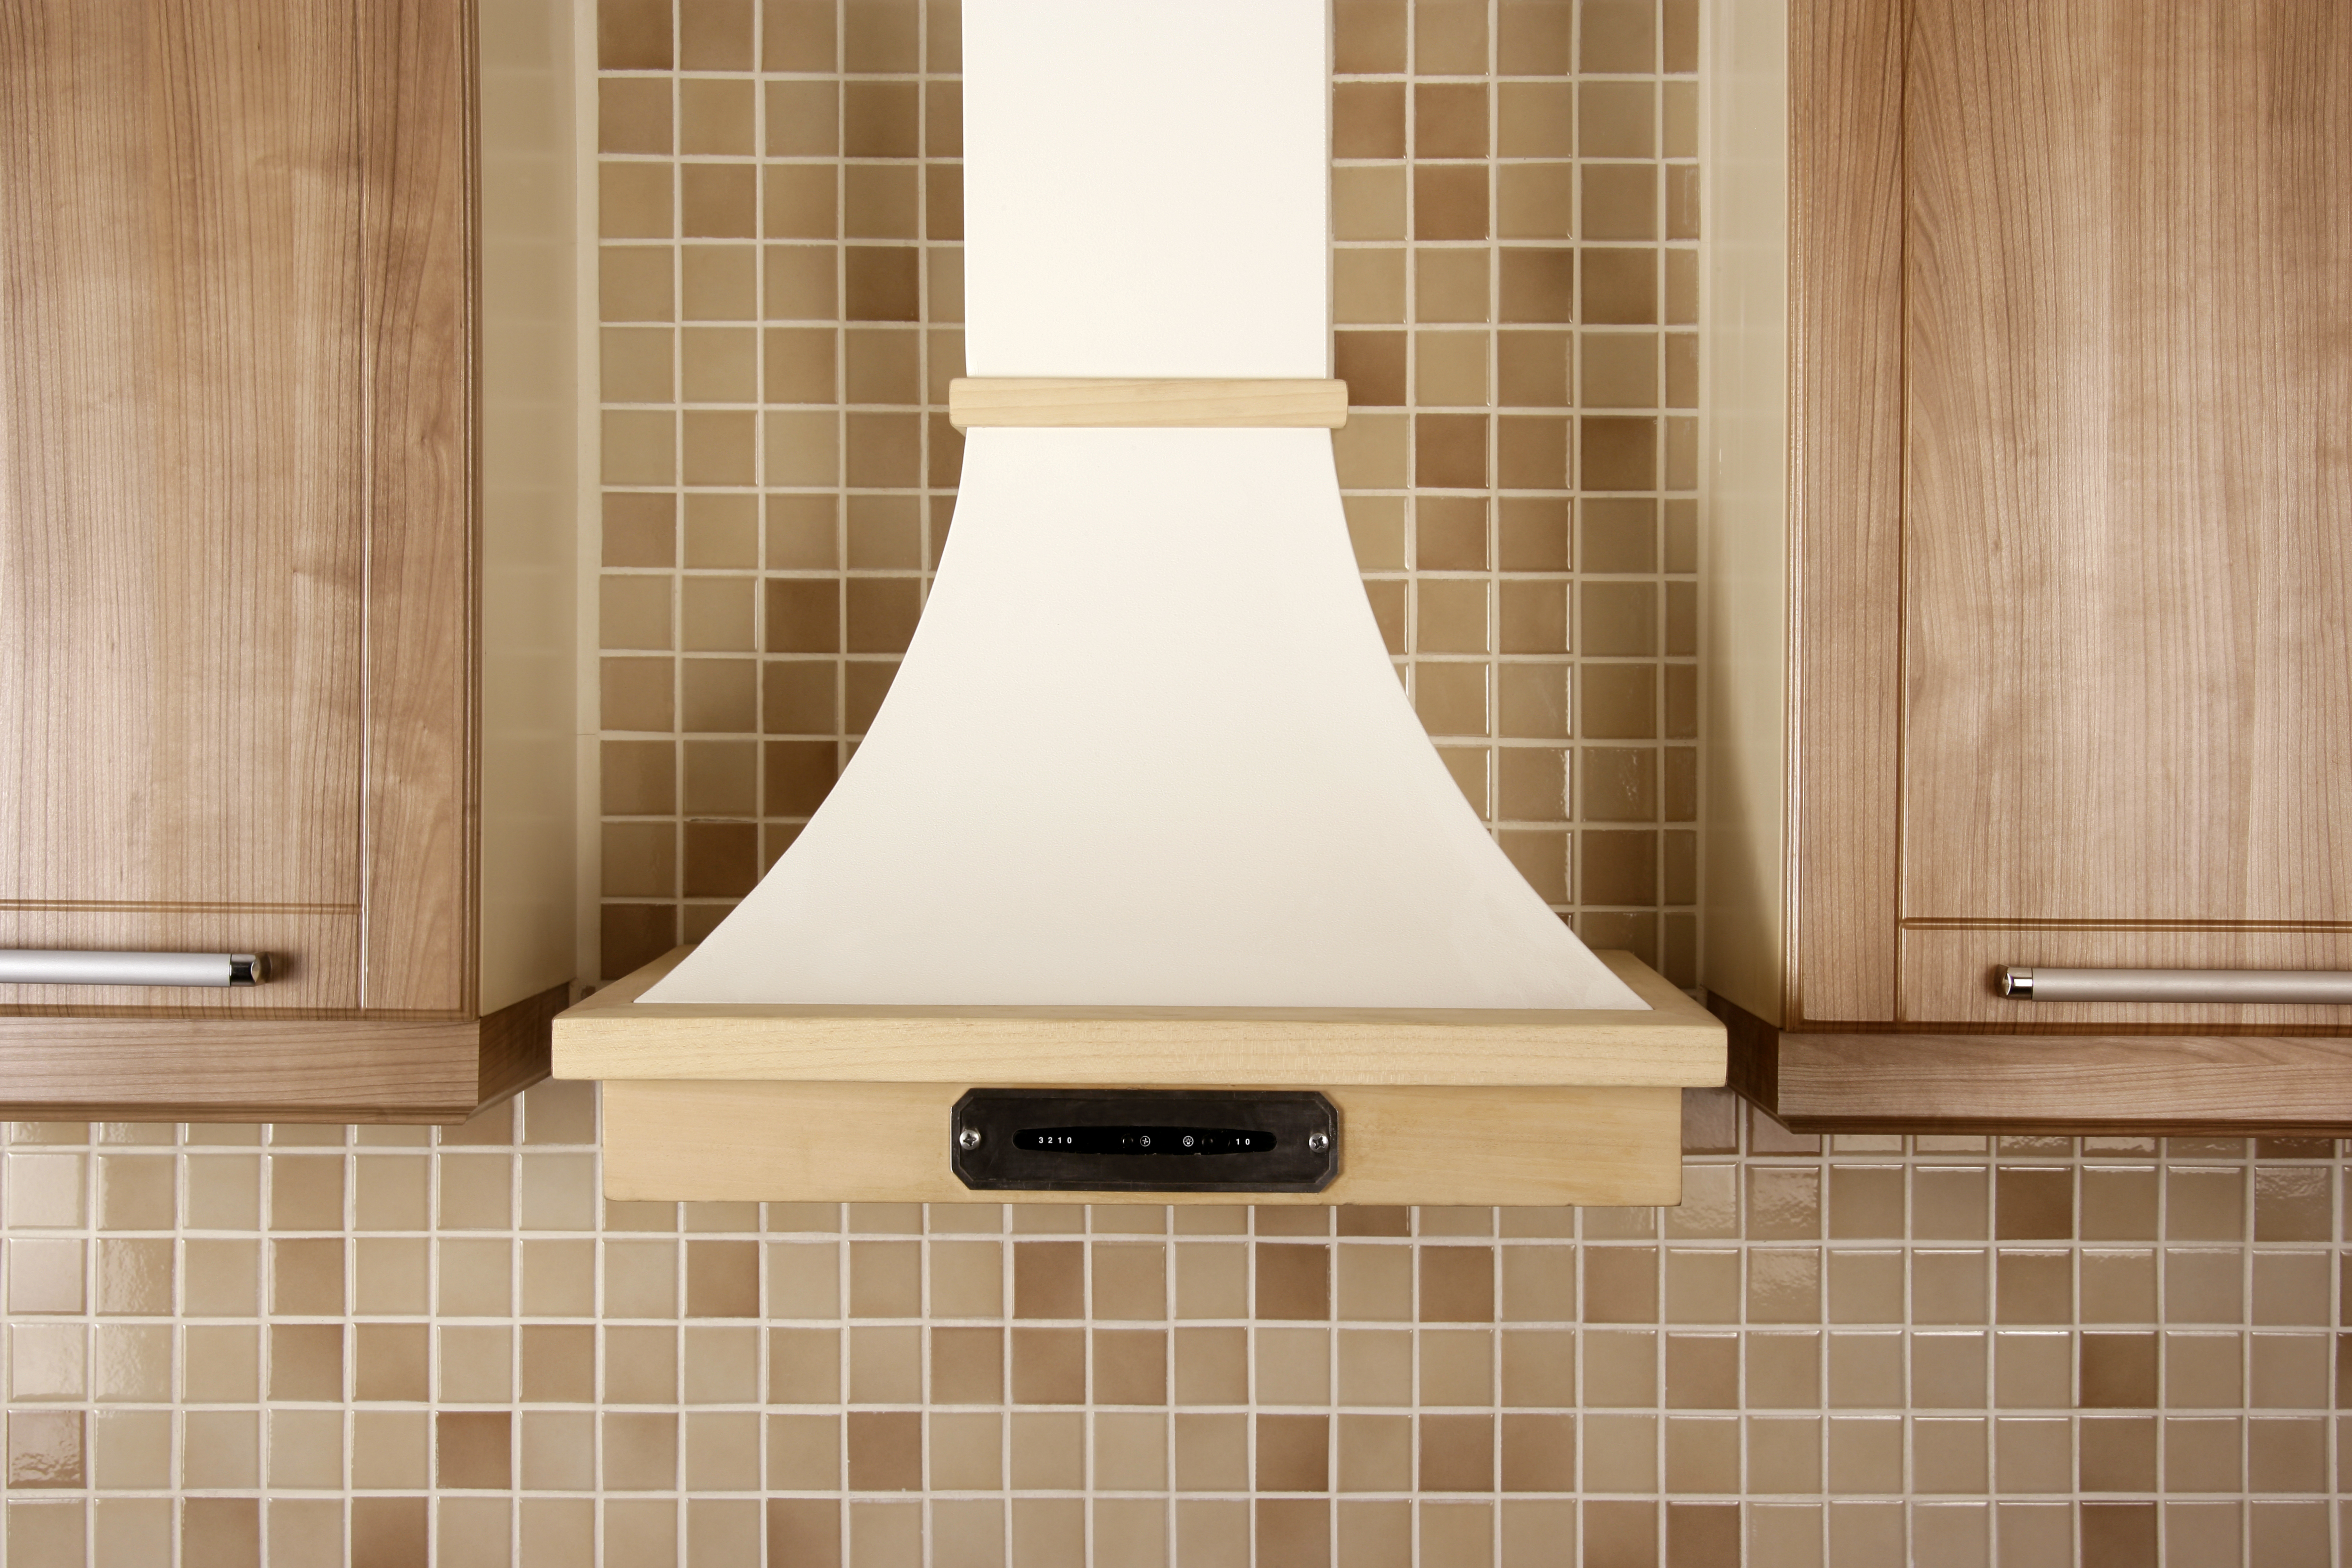 chimney in kitchen design. shutterstock 51402136 Chimneys And Hobs  How To Choose The Right Appliances For Your